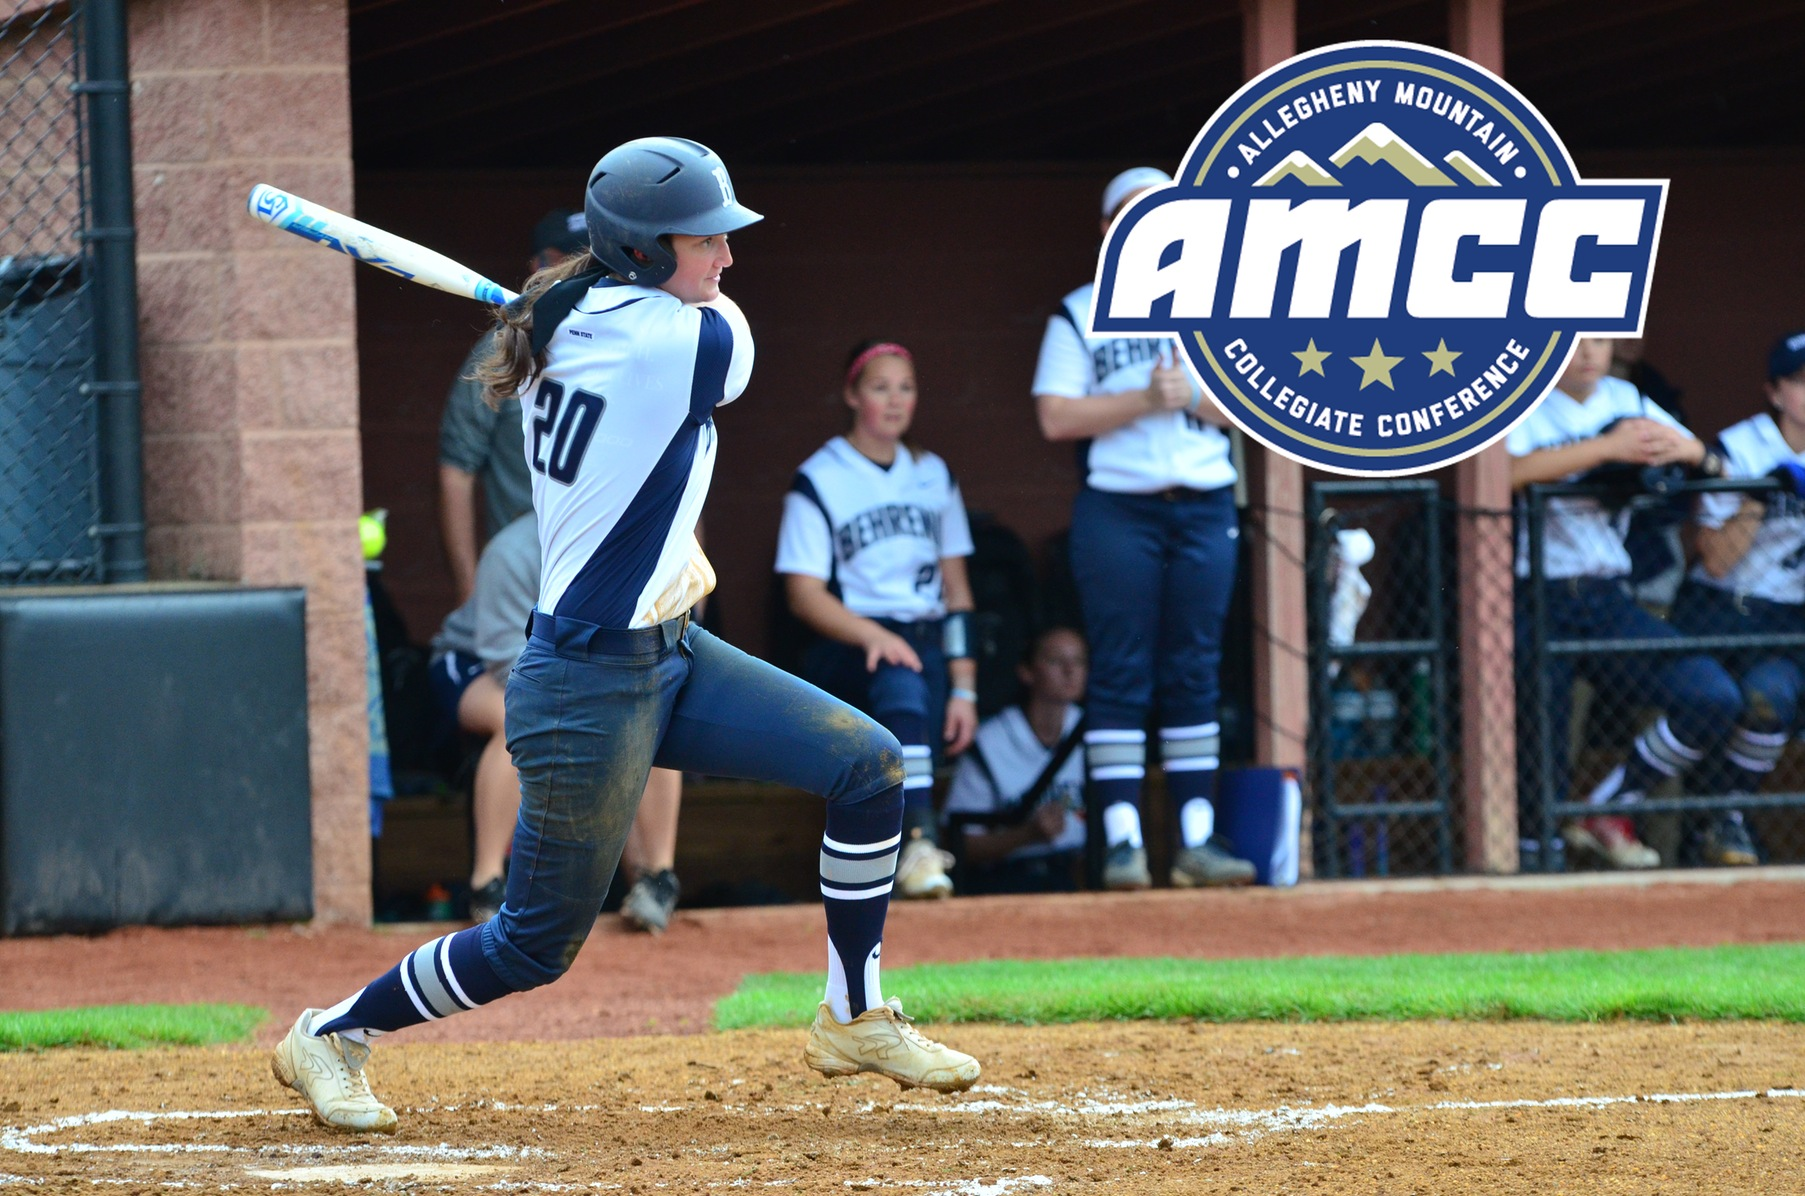 Gozzard Selected as AMCC Player of the Week